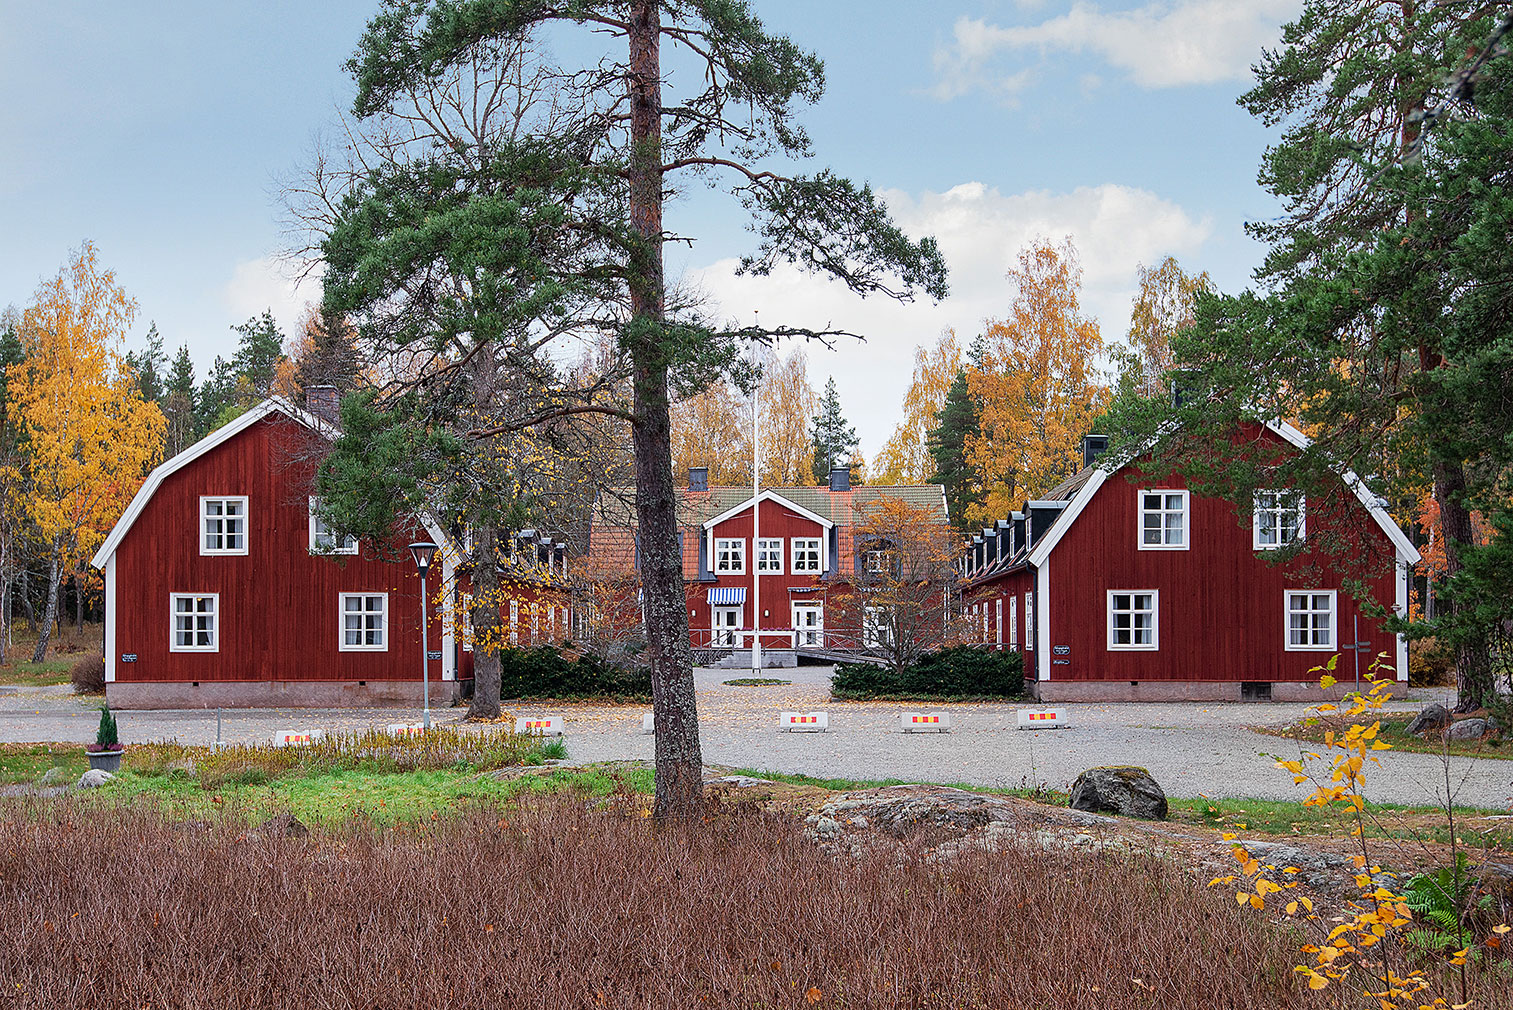 18th century Swedish wellness village Sätra Brunn with Wes Anderson vibes asks for £5.9m